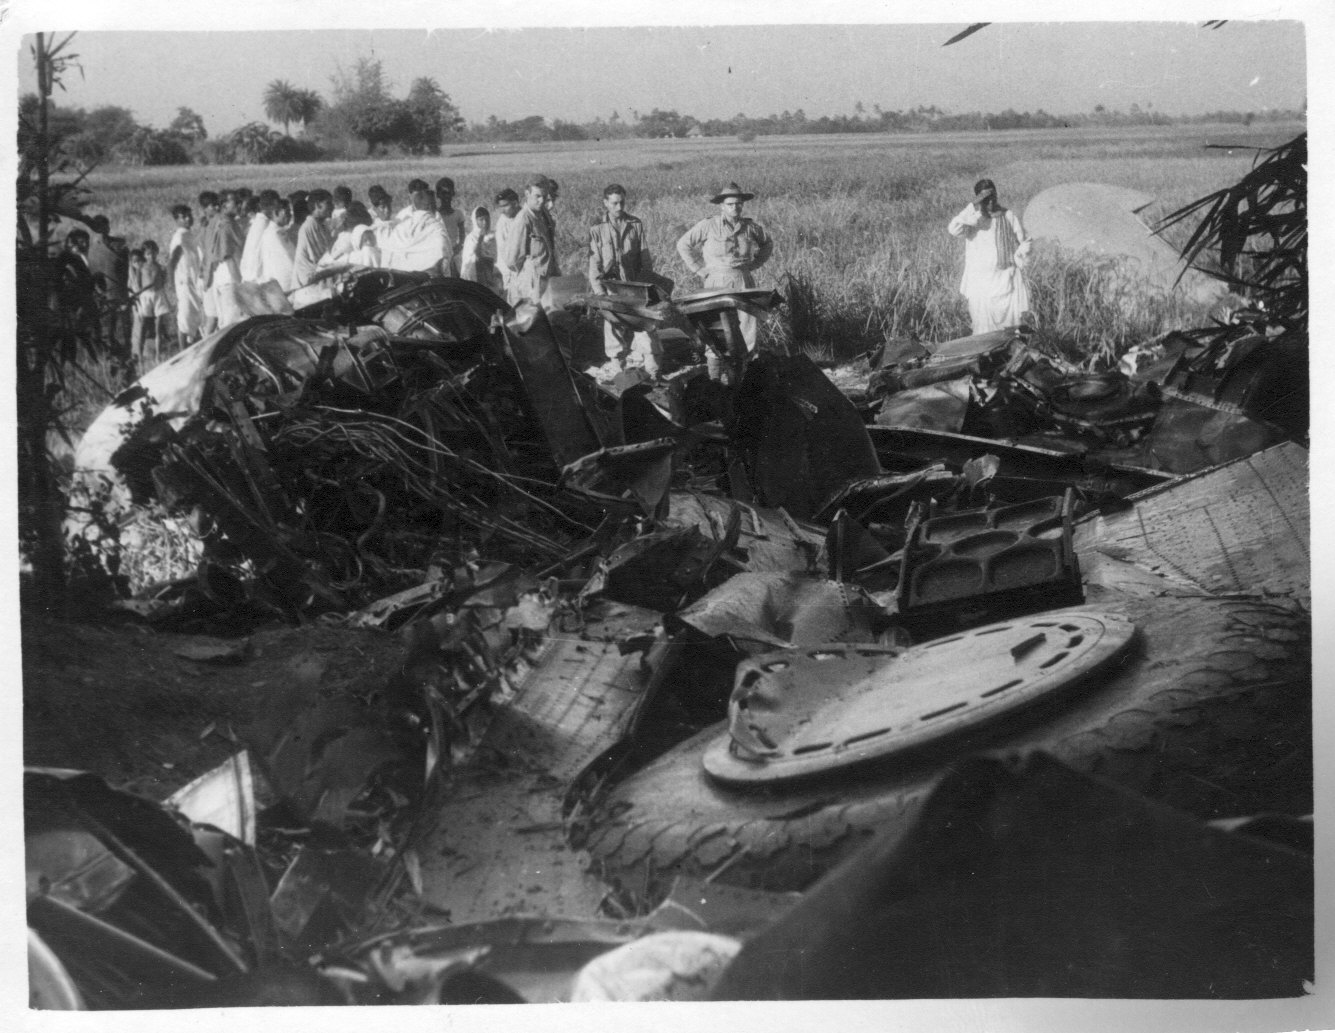 Rubble of a plane that crashed in the 'Bermuda Traingle' during World War -II